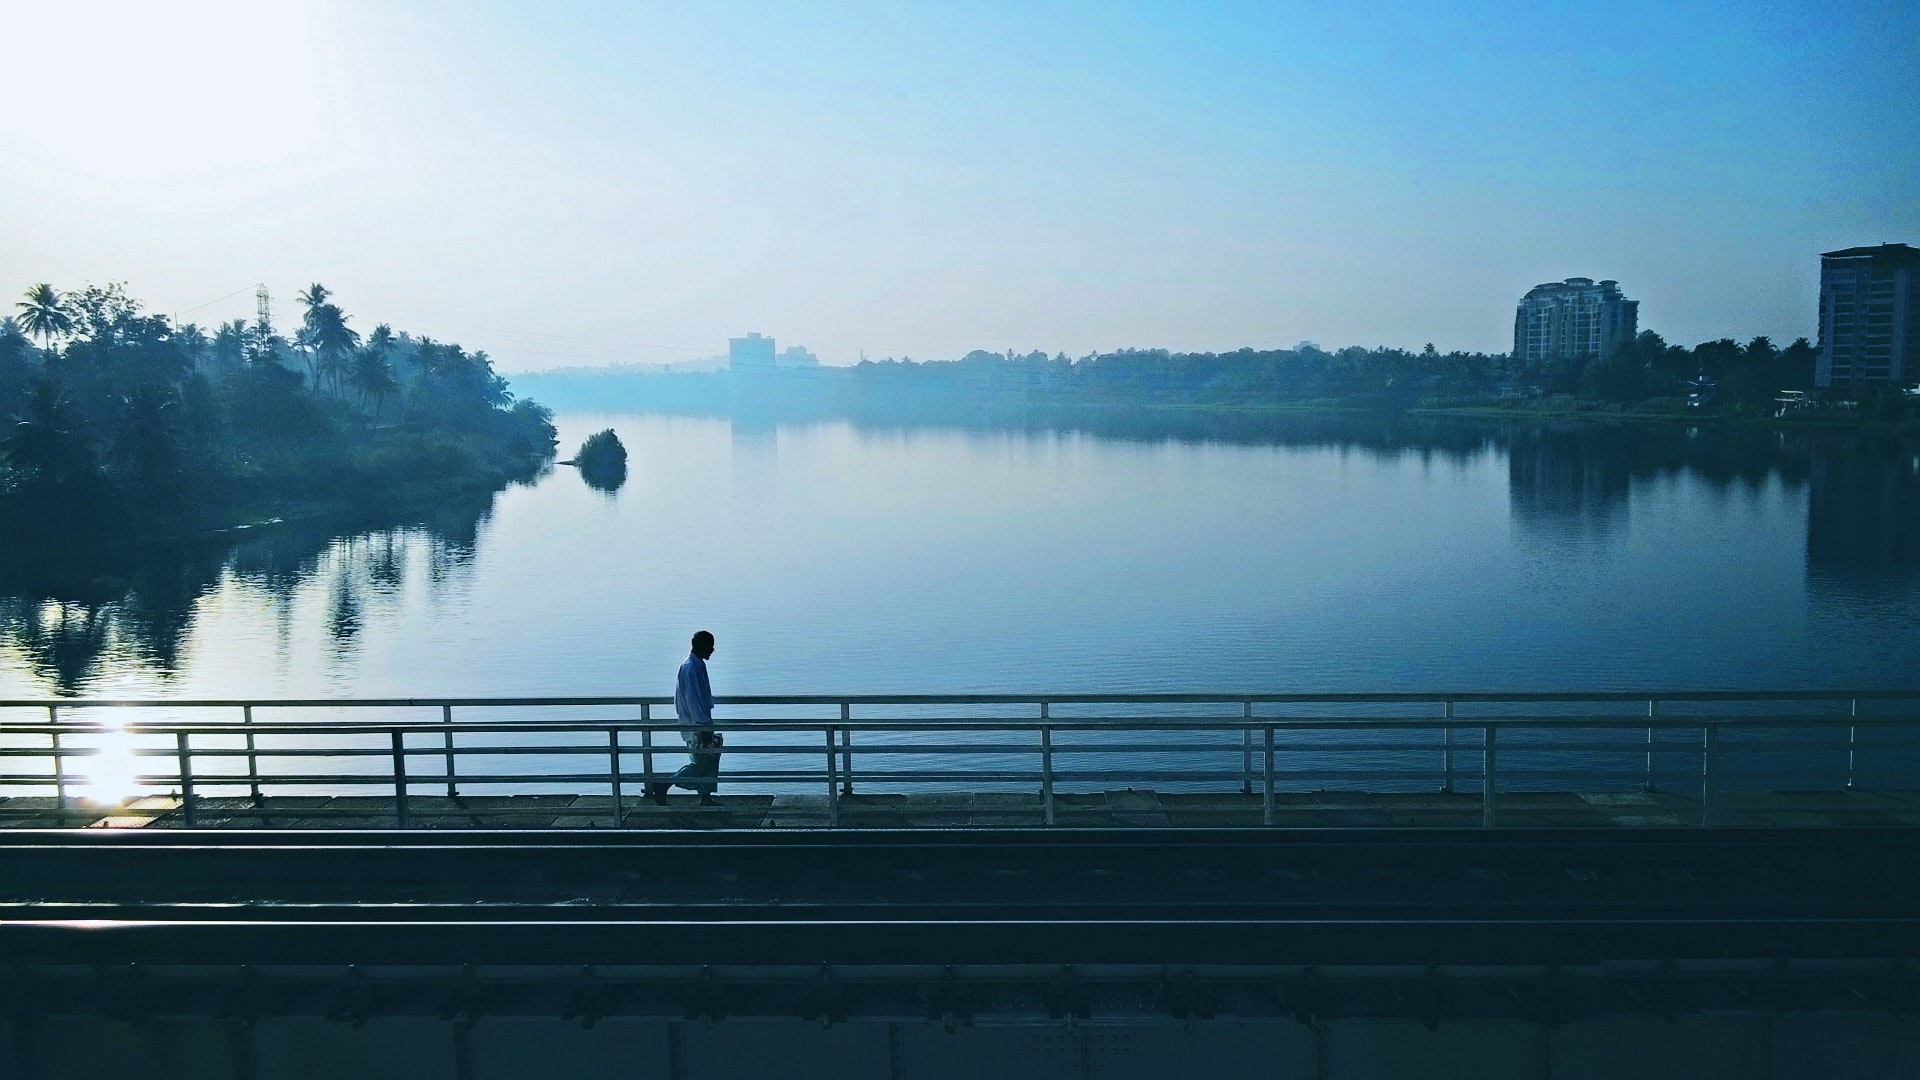 person walking on bridge near body of water